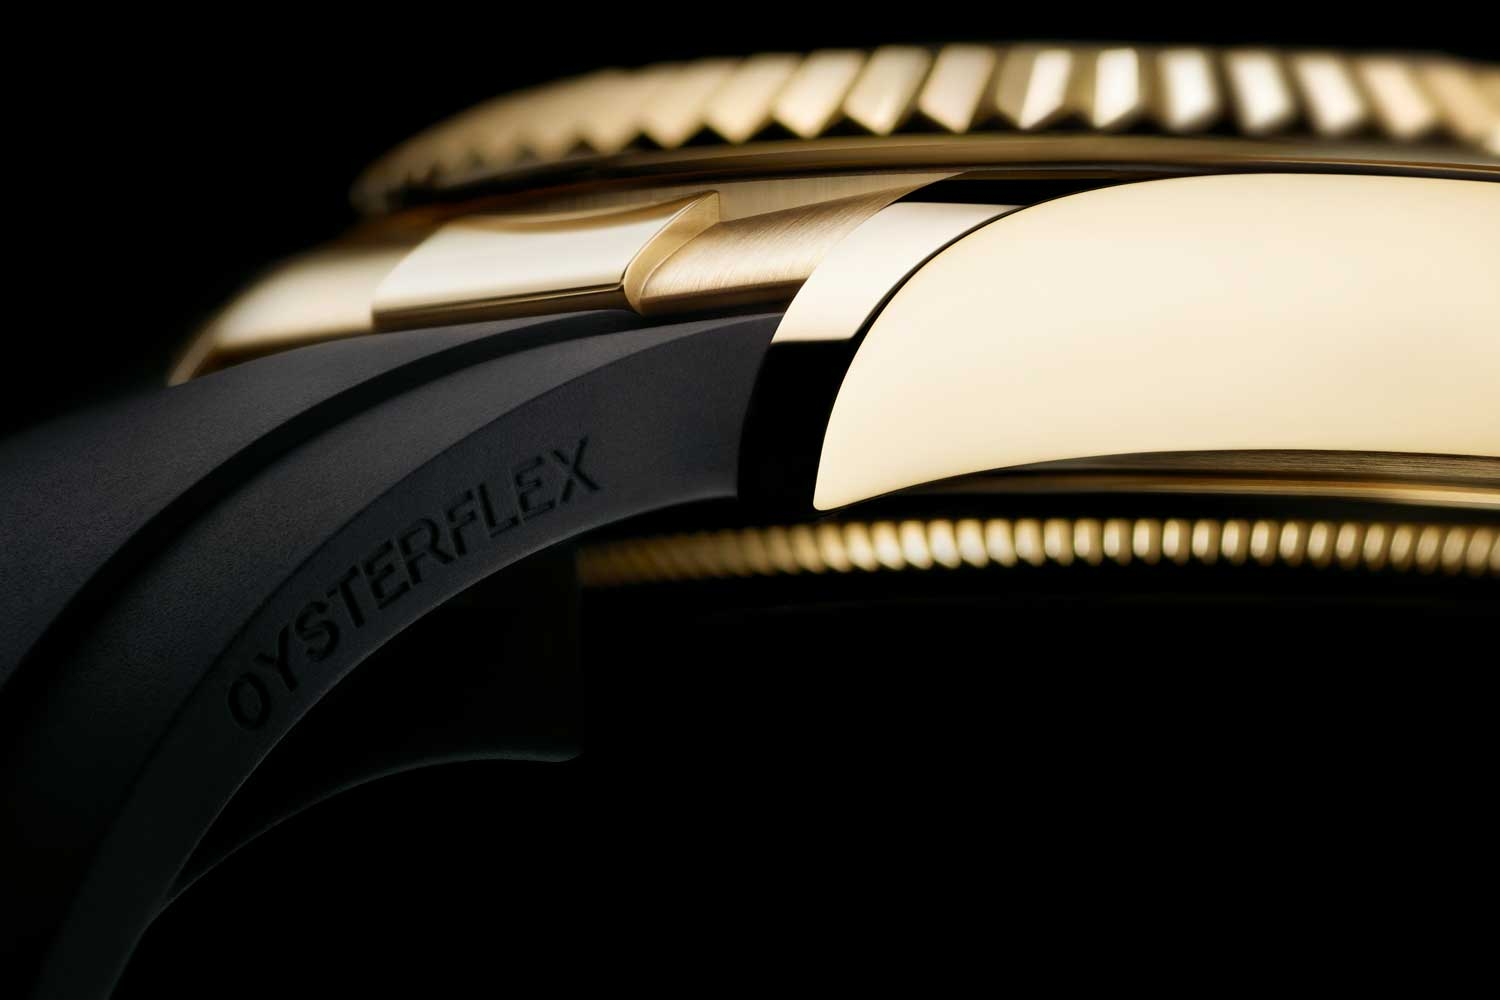 The Oysterflex bracelet is simple in aesthetics but complex in its making